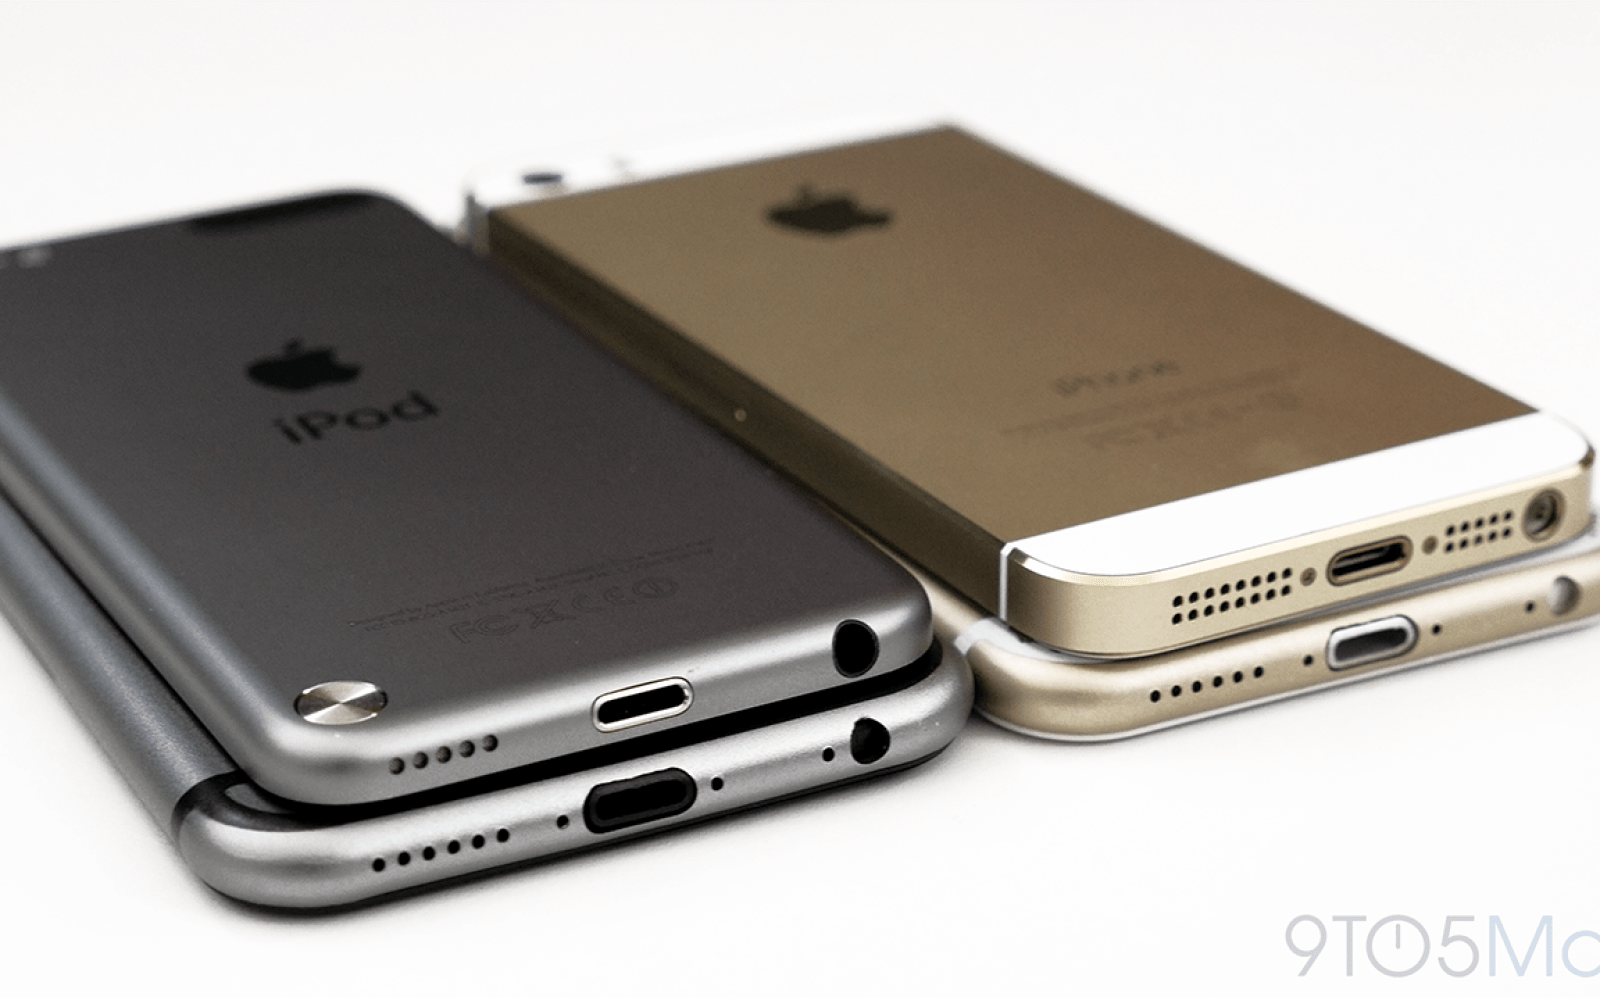 Gold and Space Gray iPhone 6 mockup vs iPhone 5s, 5th gen iPod touch, and alleged iPhone 6 cases (4K video)